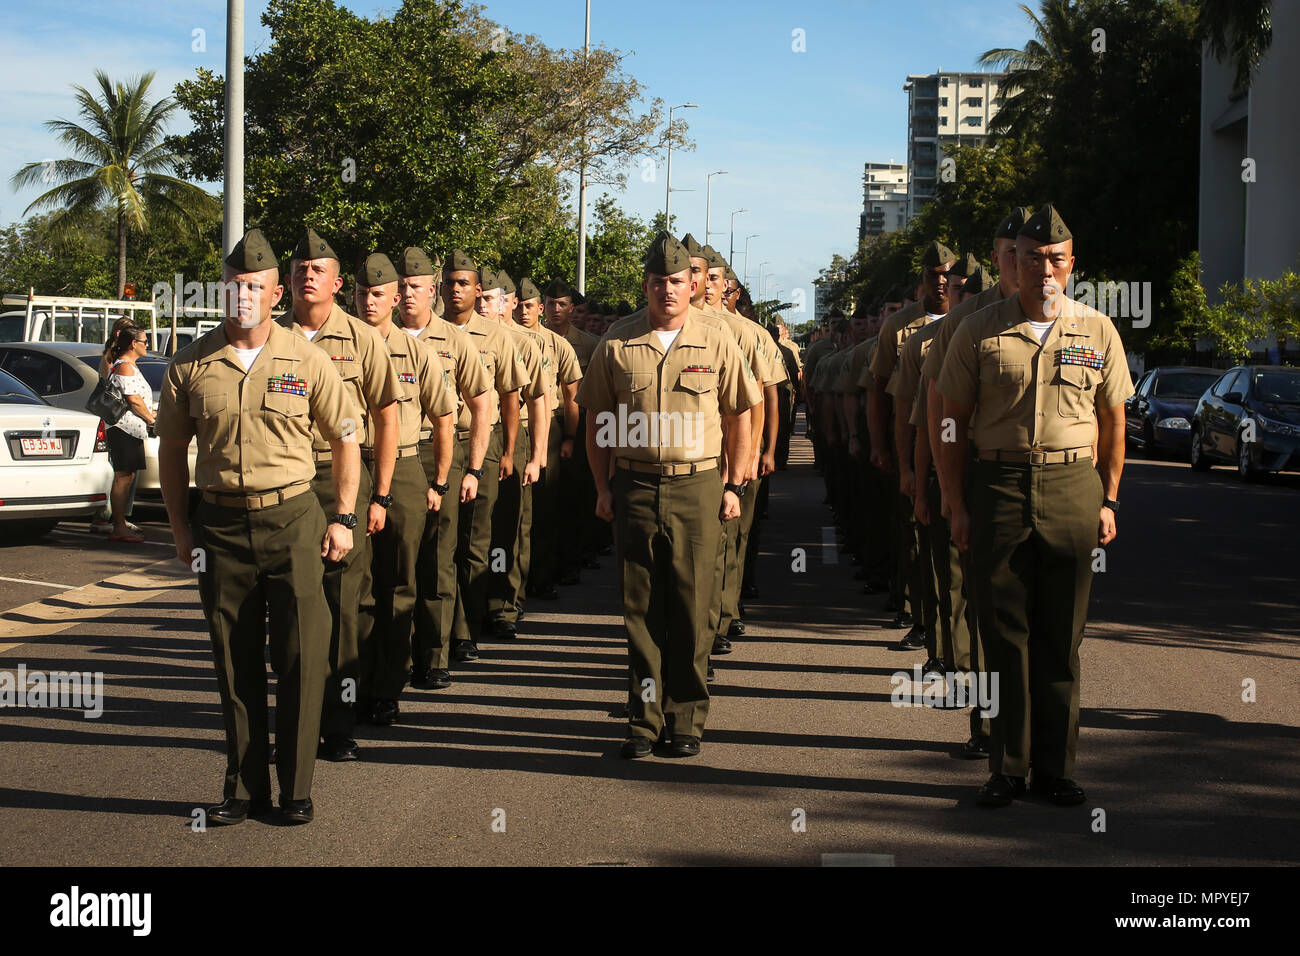 DARWIN, Australia – U.S. Marines with 3rd Battalion, 4th Marine Regiment, 1st Marine Division, Marine Rotational Darwin 17.2, stand ready to march during Australian and New Zealand Army Corps (ANZAC) Day, April 25, 2017. ANZAC Day is observed on April 25th and is a national day of remembrance in Australia and New Zealand that commemorates their countrymen who served and gave all at Gallipoli against the Ottoman Empire in World War I. (U.S. Marine Corps photo by Sgt. Emmanuel Ramos) Stock Photo